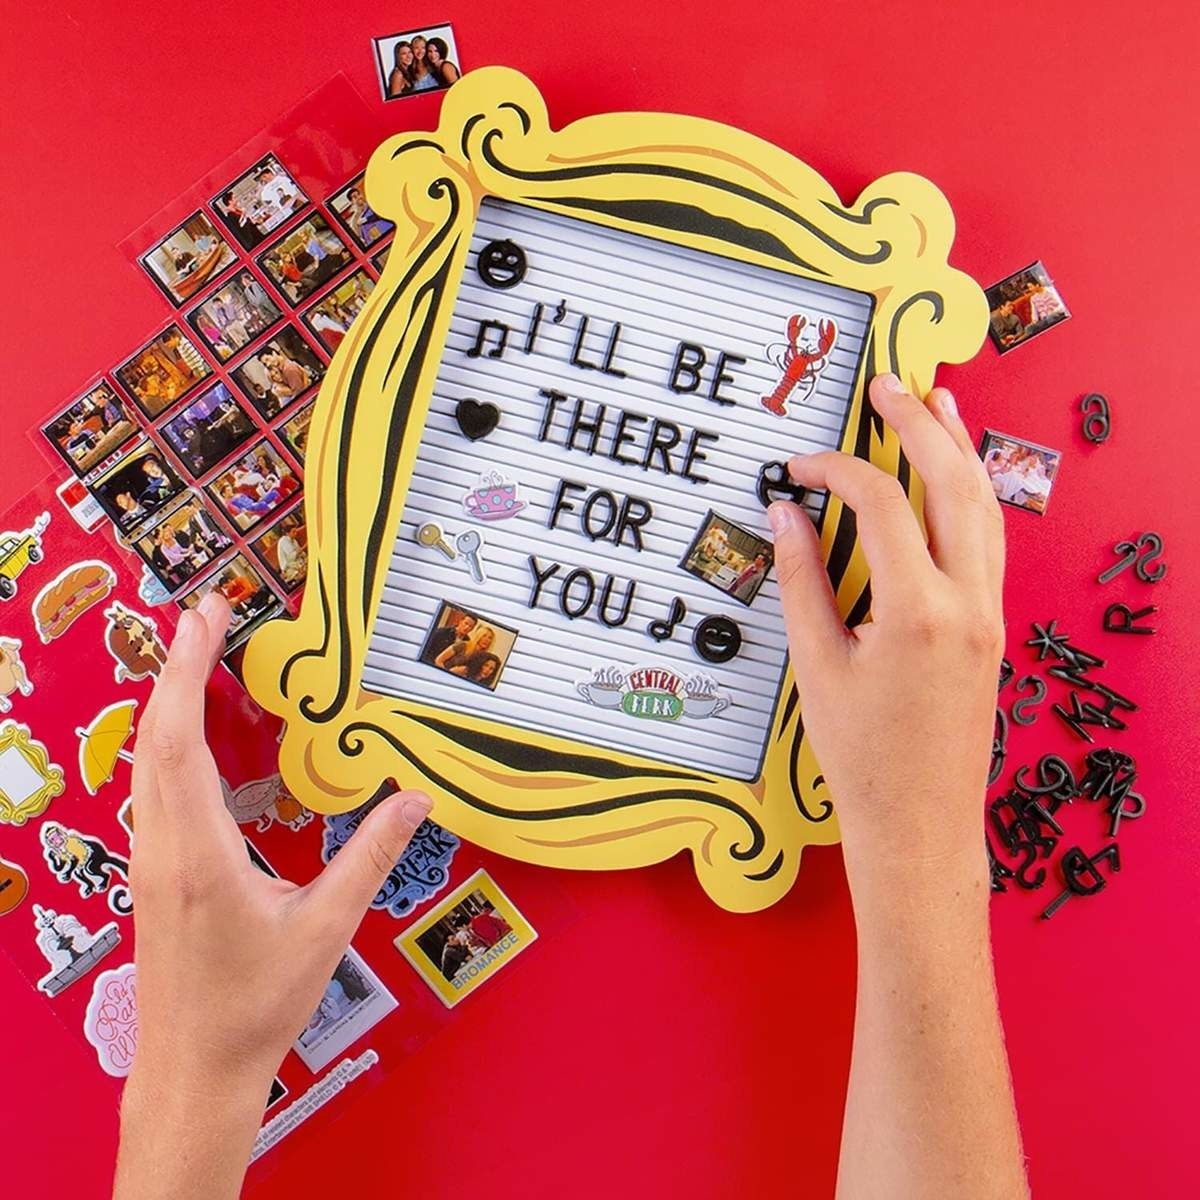 The letterboard shaped like the yellow frame from friends with I'll be there for you written on it with icons like the central perk logo and a lobster